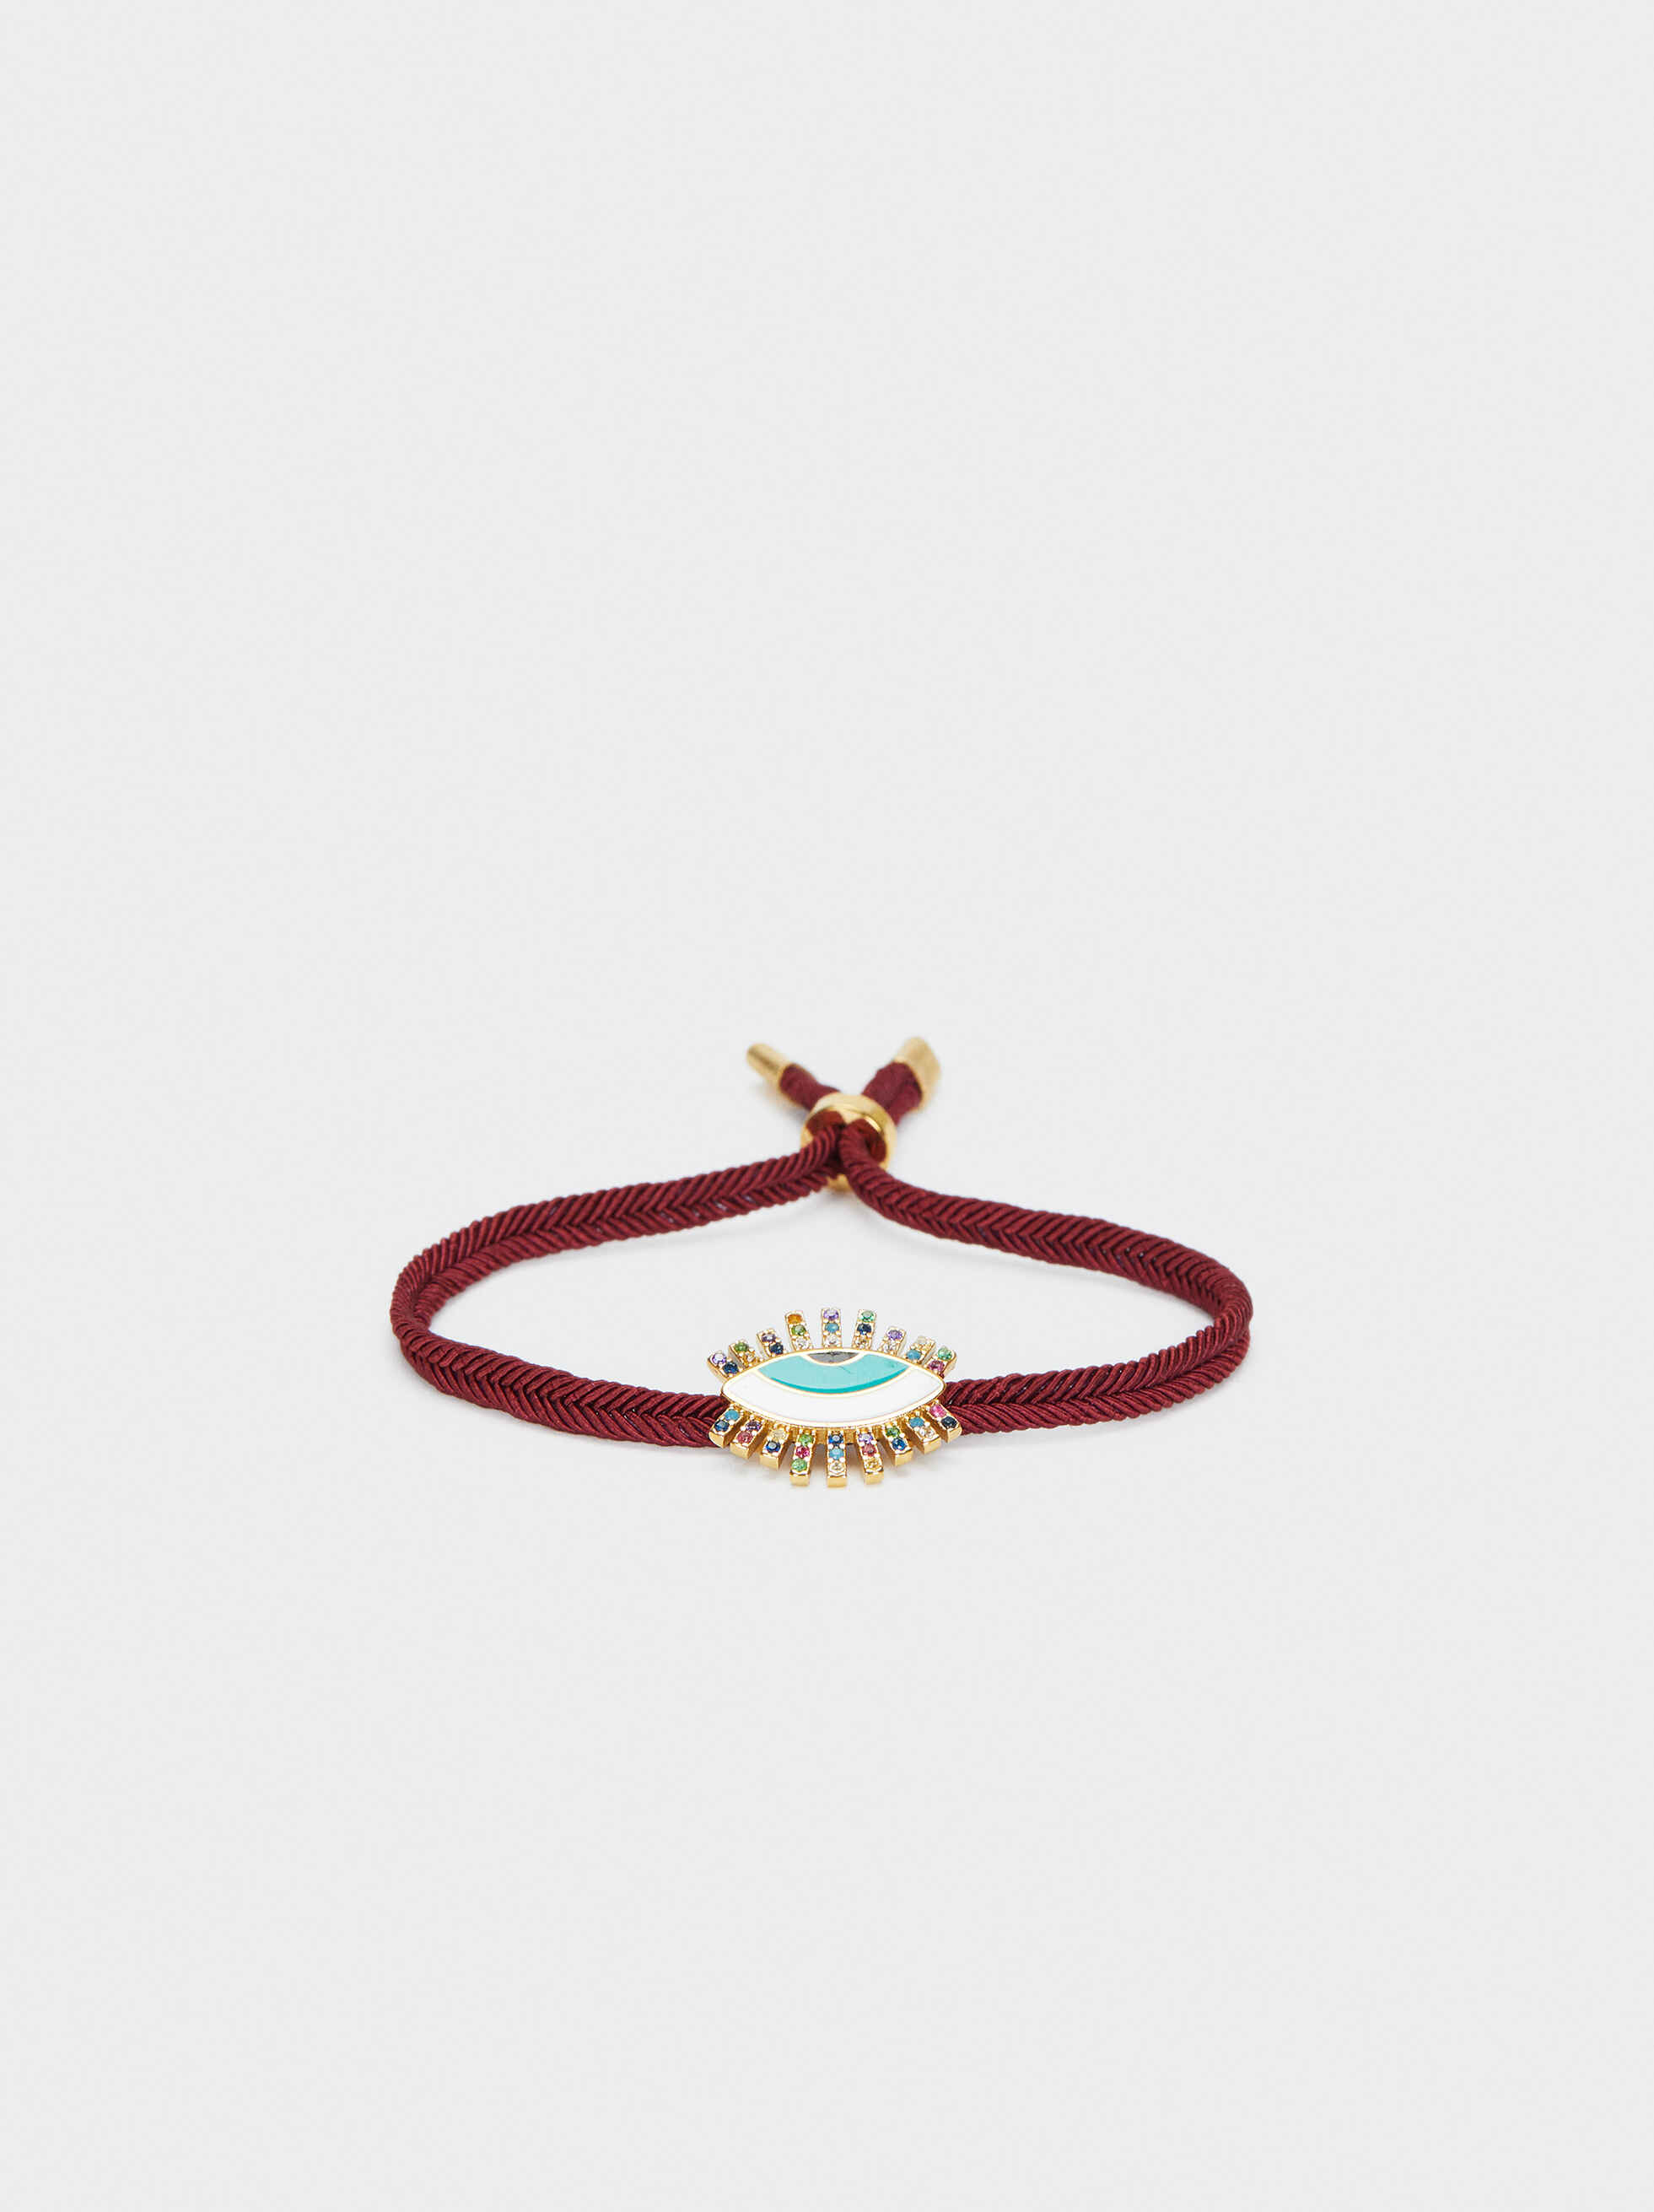 Adjustable Stainless Steel Bracelet With Multicoloured Eye Charm, Bordeaux, hi-res